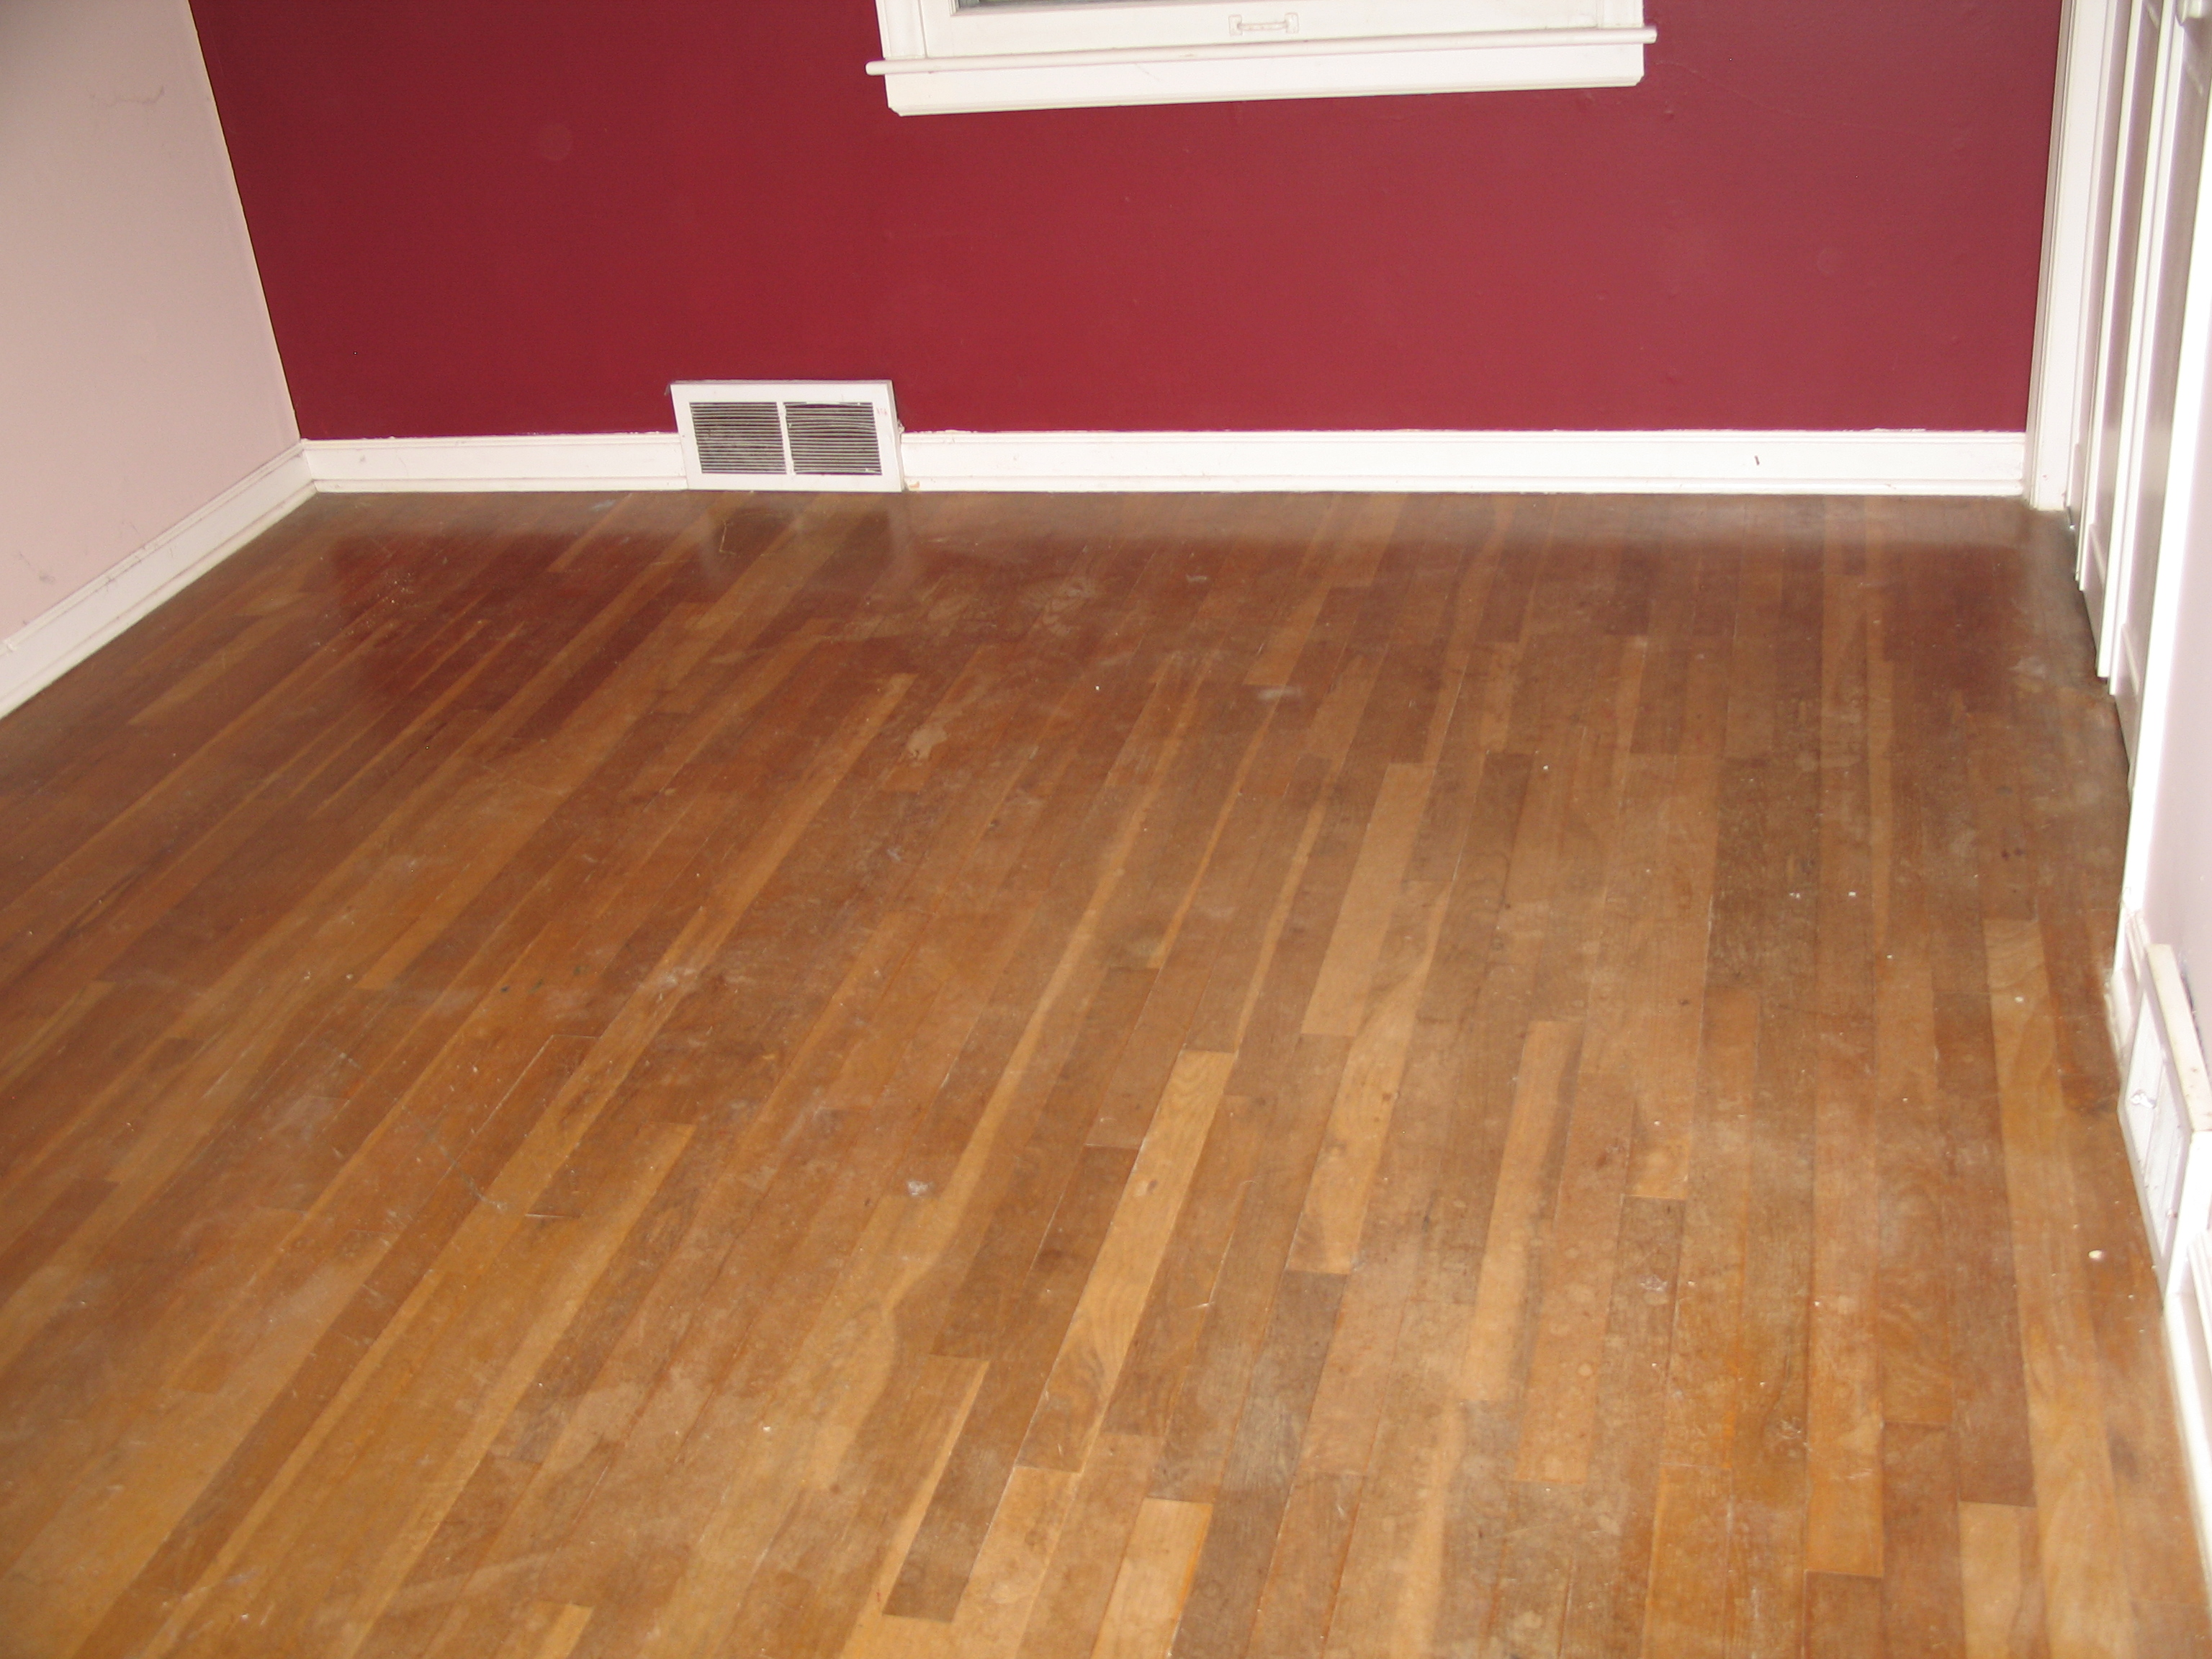 Hardwood floor refinishers flooring ideas home for Sanding hardwood floors